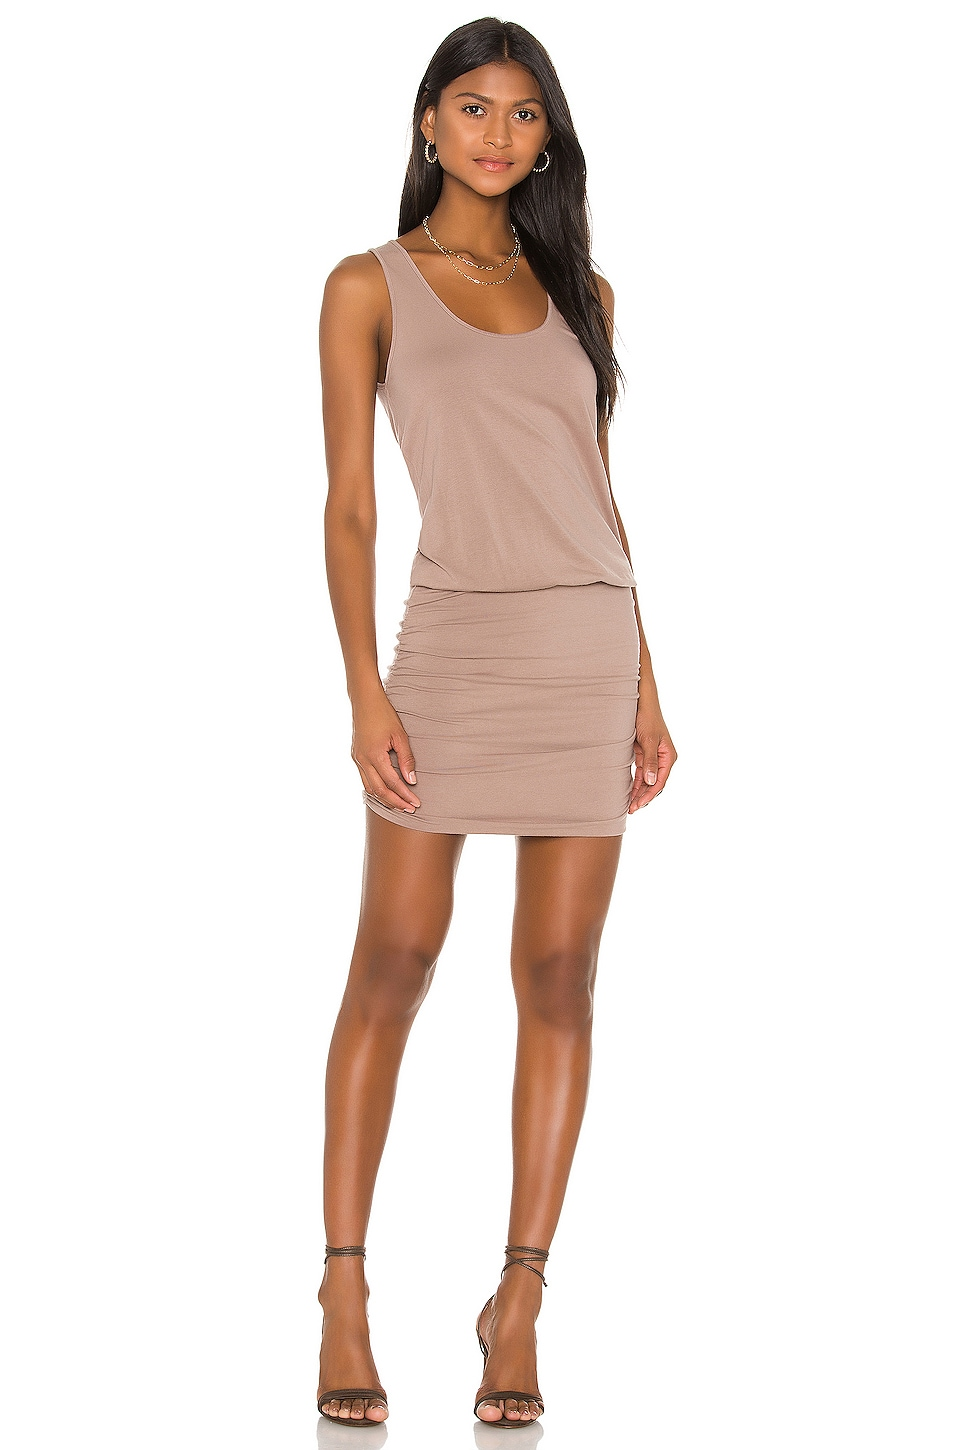 Draped Modal Jersey Mini Dress             Bobi                                                                                                       CA$ 93.84 8